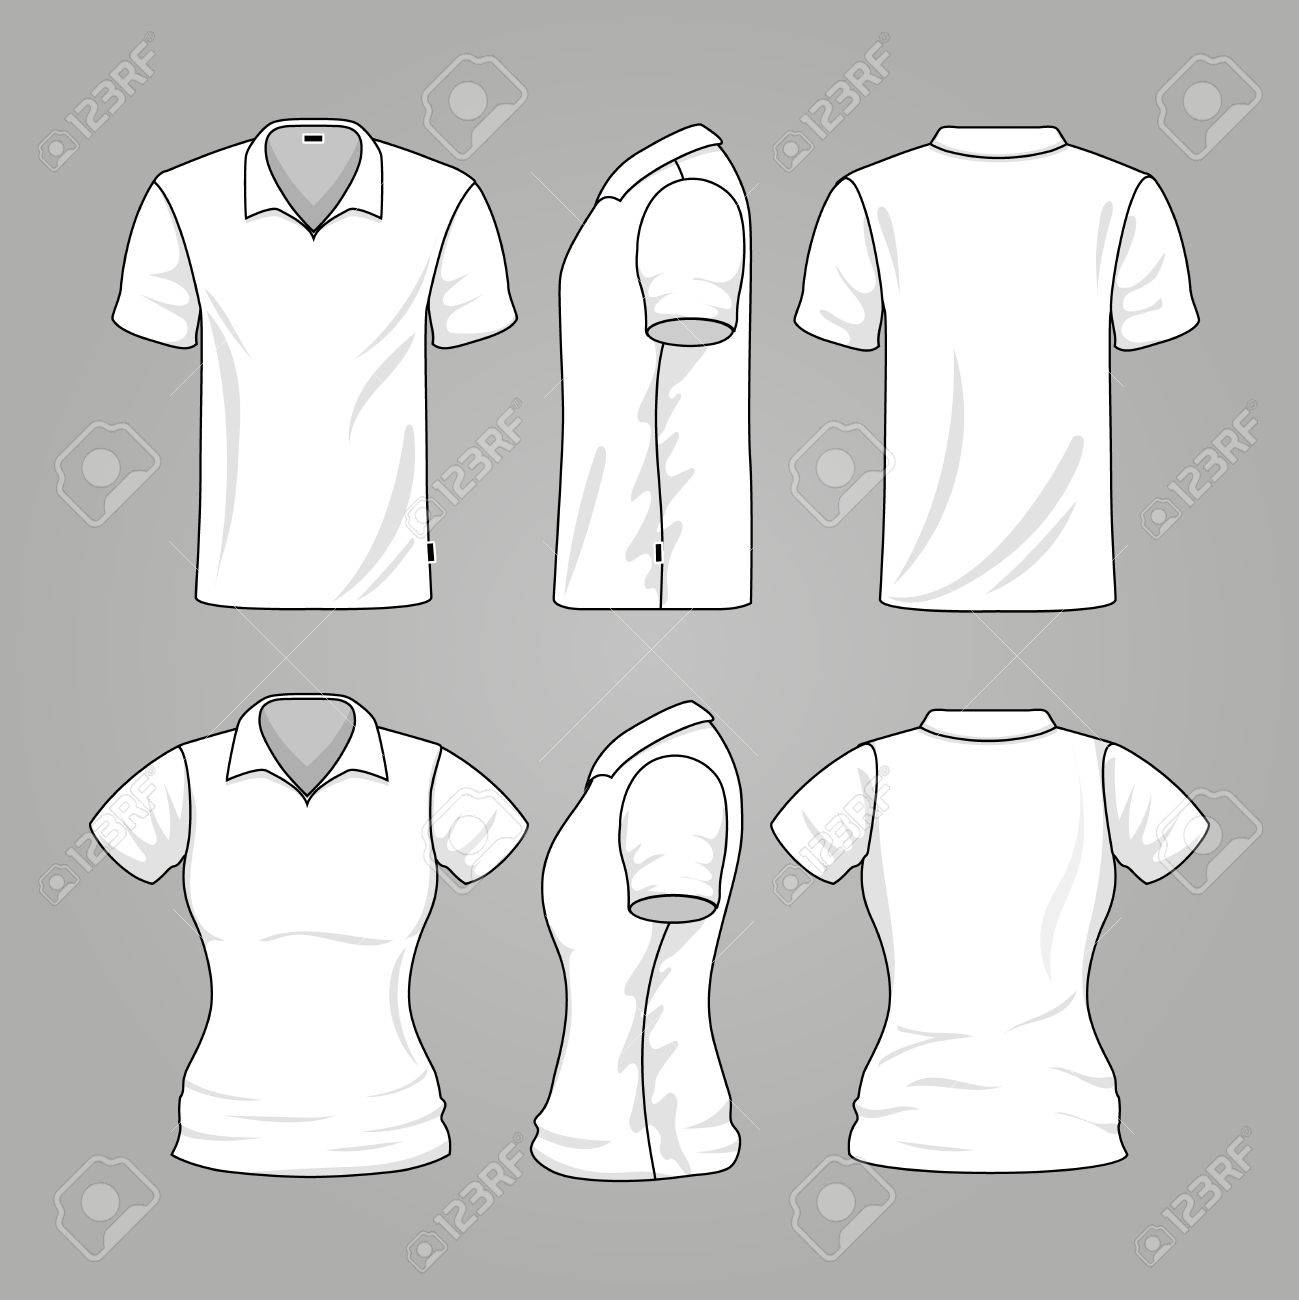 blank white mens and womens t shirt outline vector template of t ...